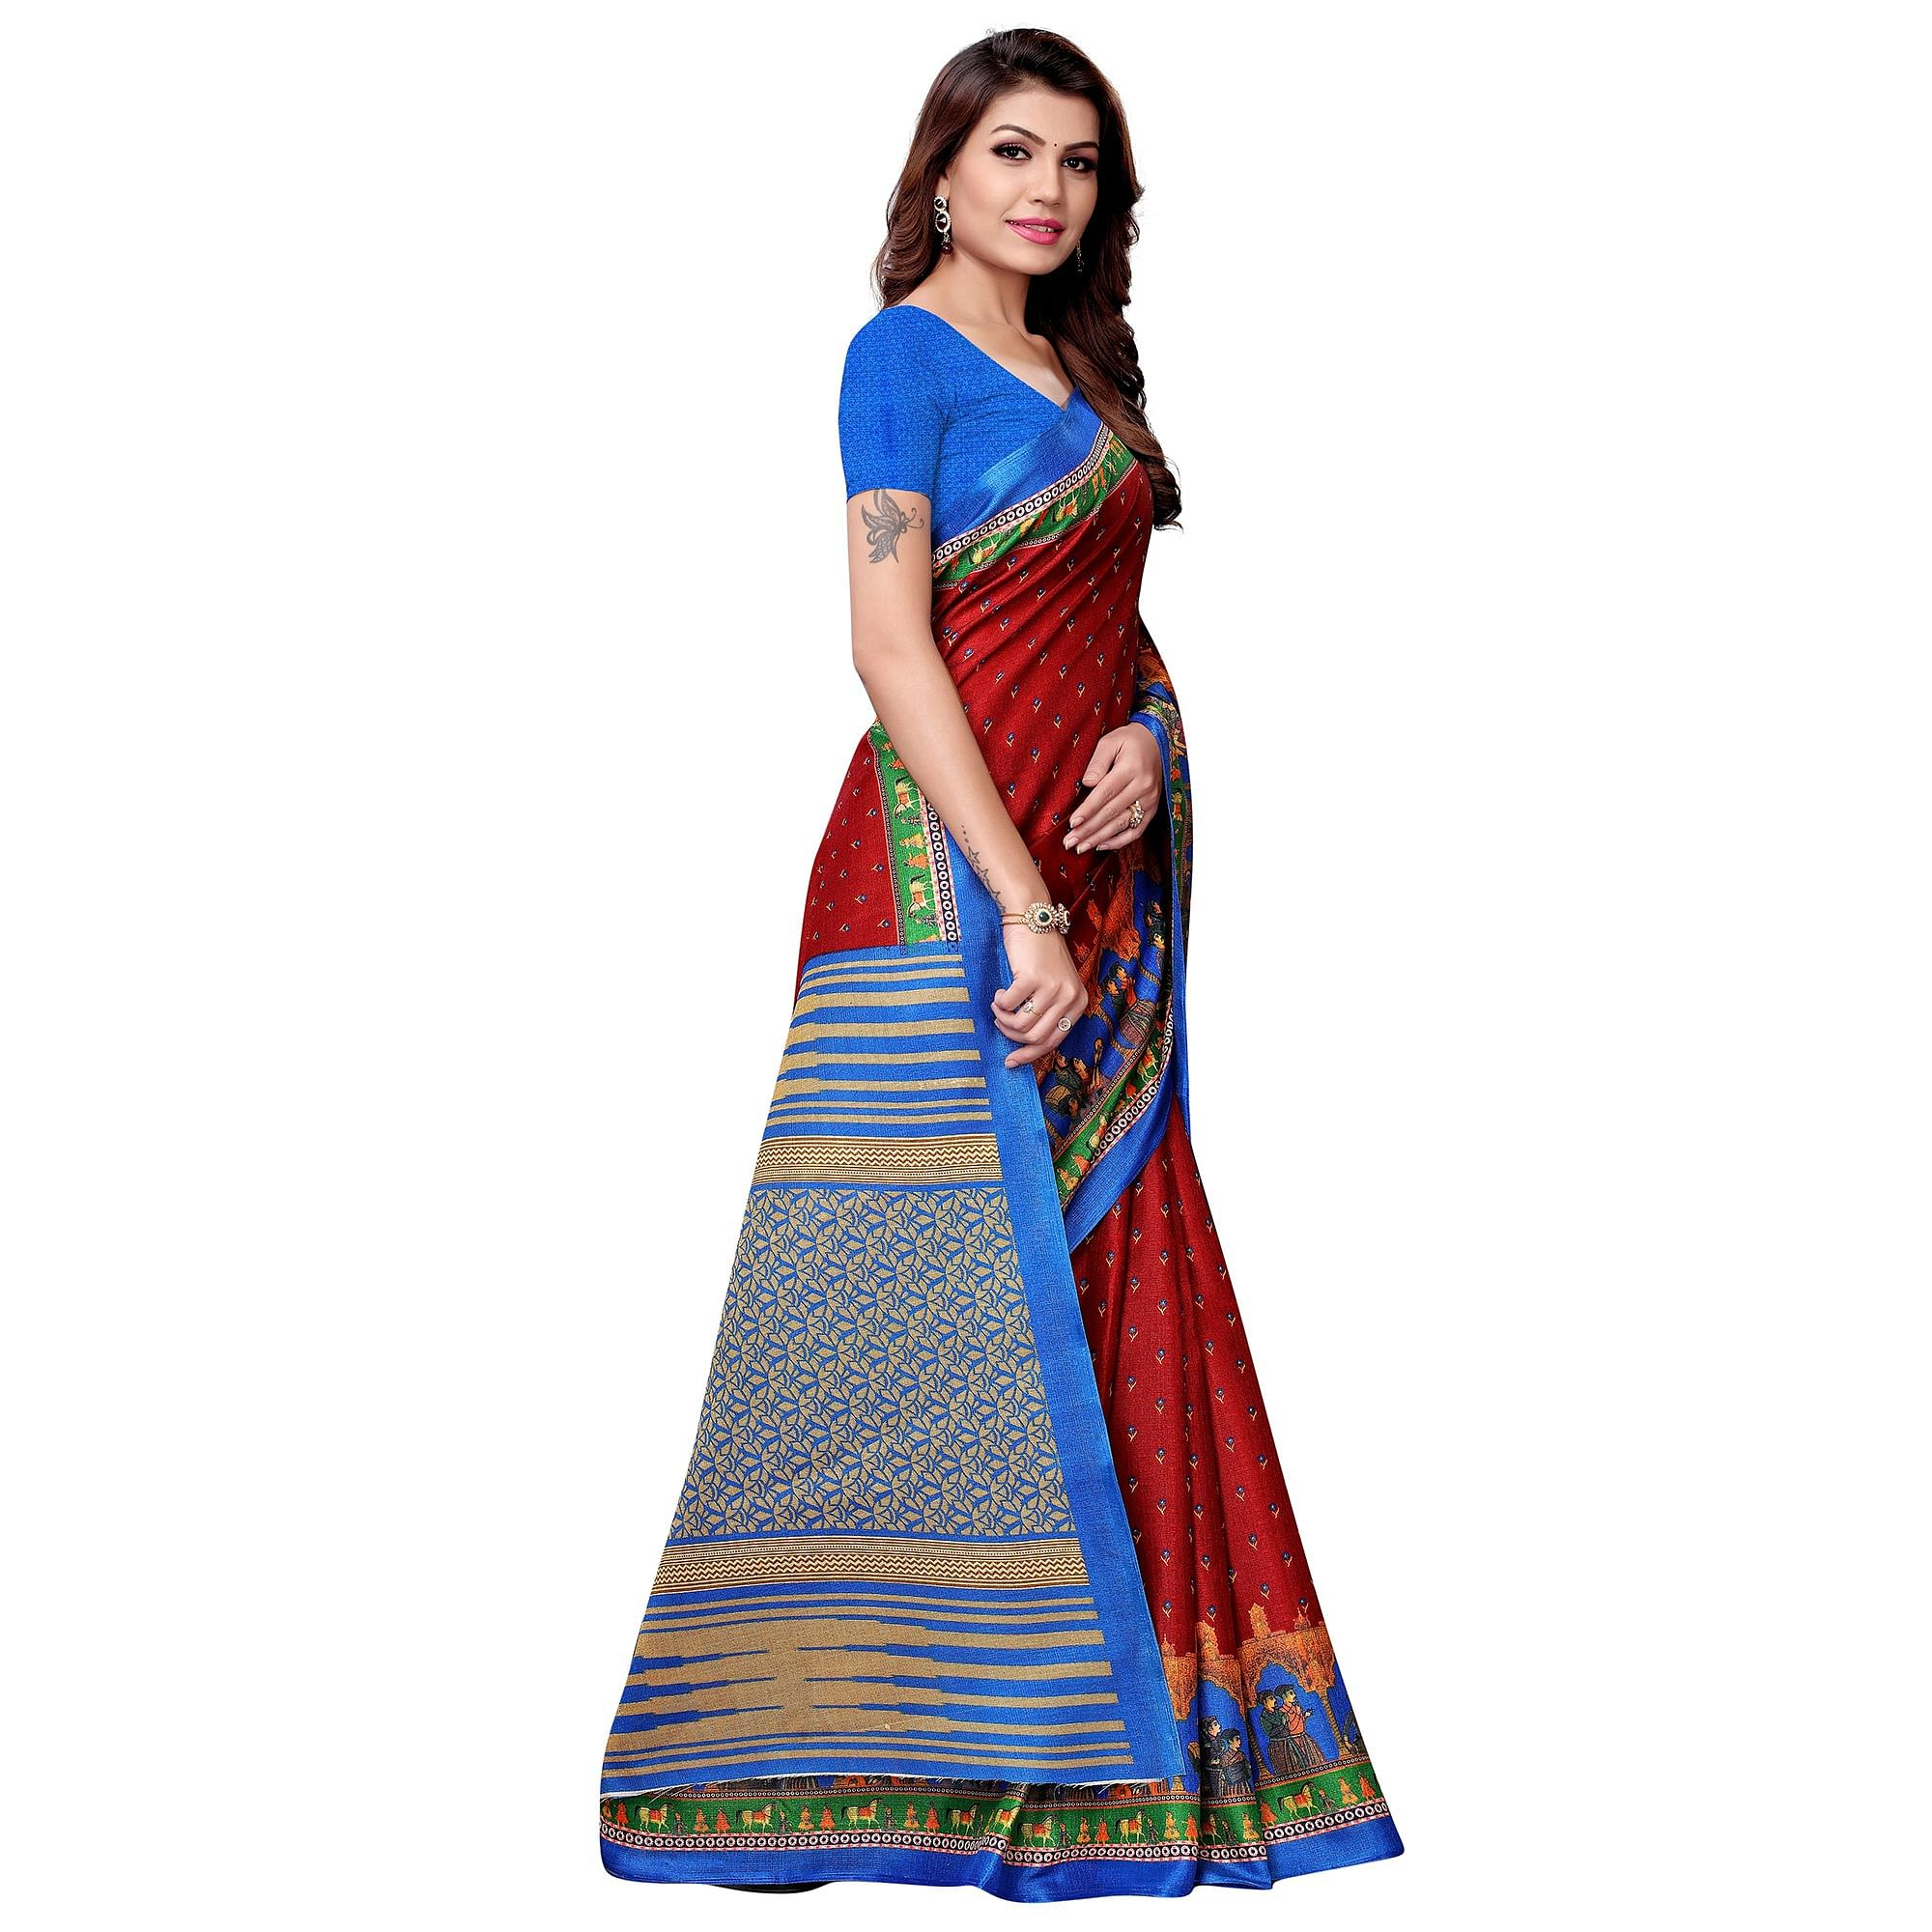 Attractive Maroon-Blue Colored Casual Printed Khadi Silk Saree